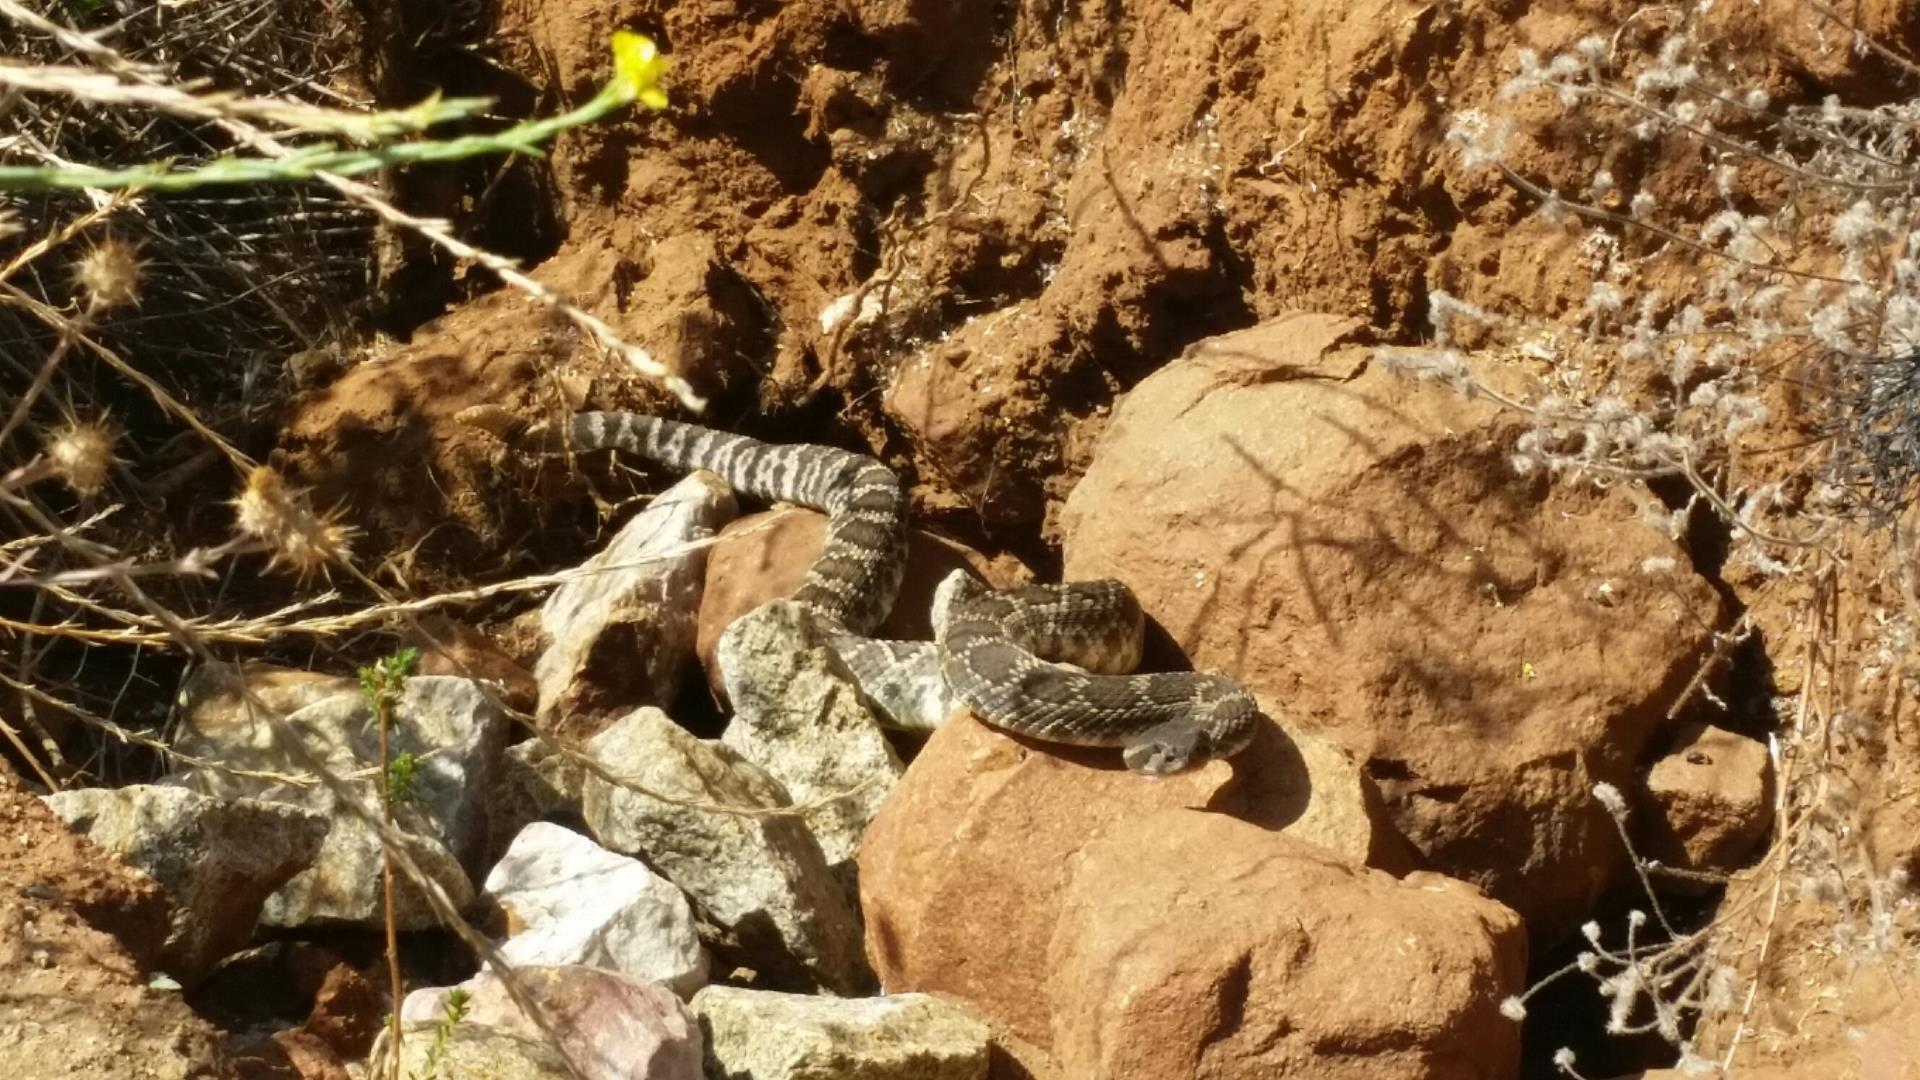 Snake found on San Marcos trails